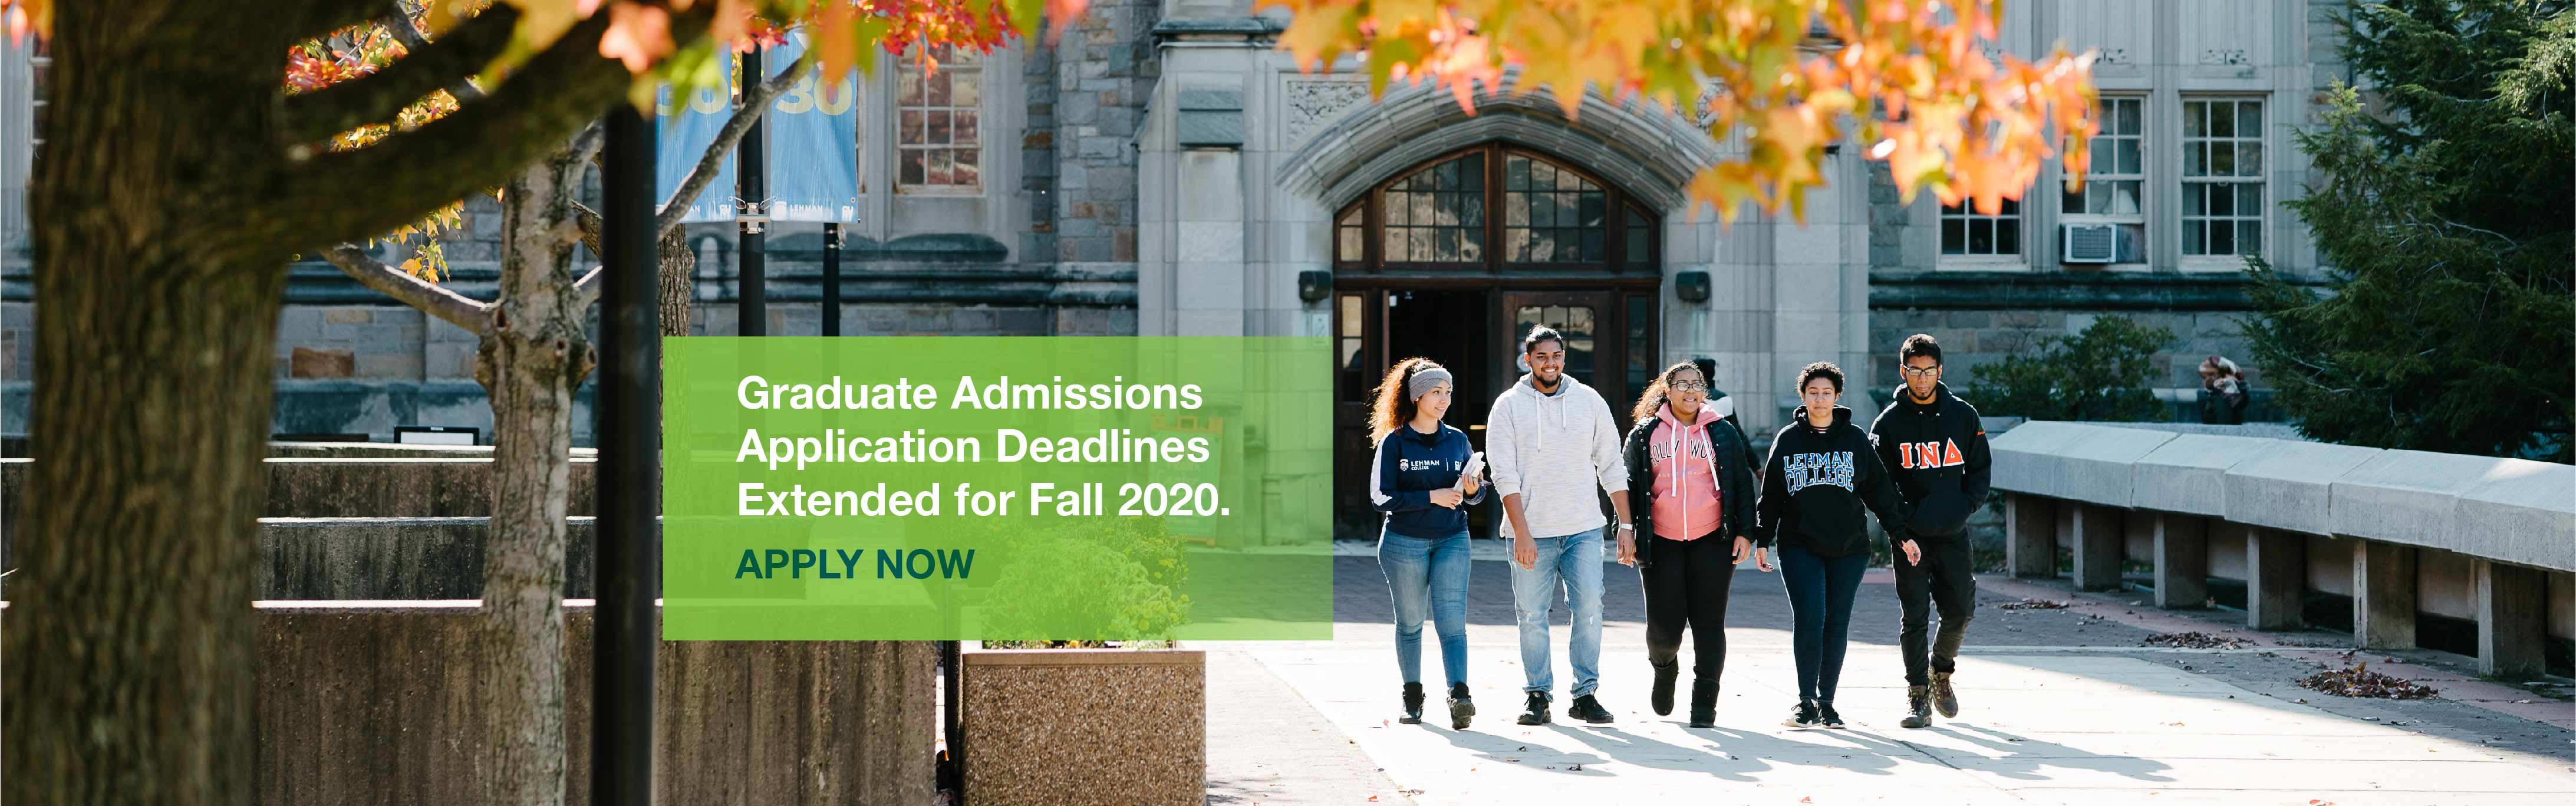 Banner for Fall 2020 Graduate Admissions